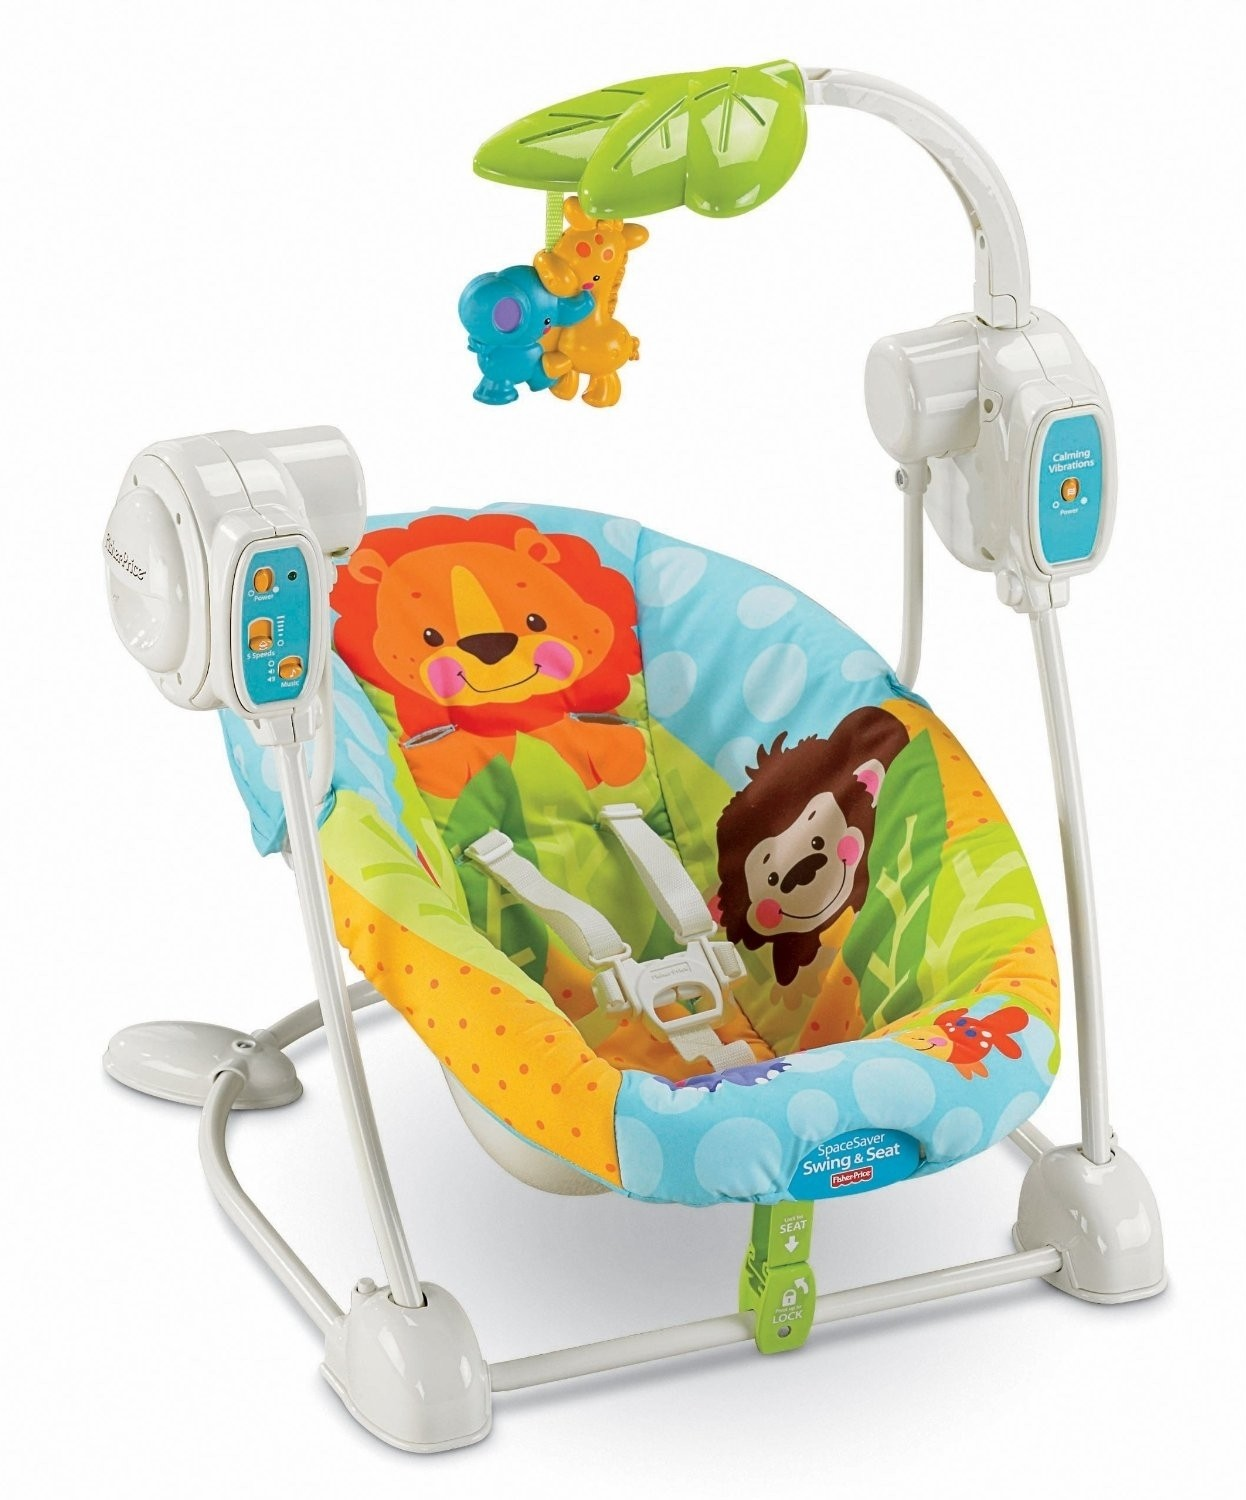 Fisher price spacesaver swing seat spacesaver swing for Silla fisher price